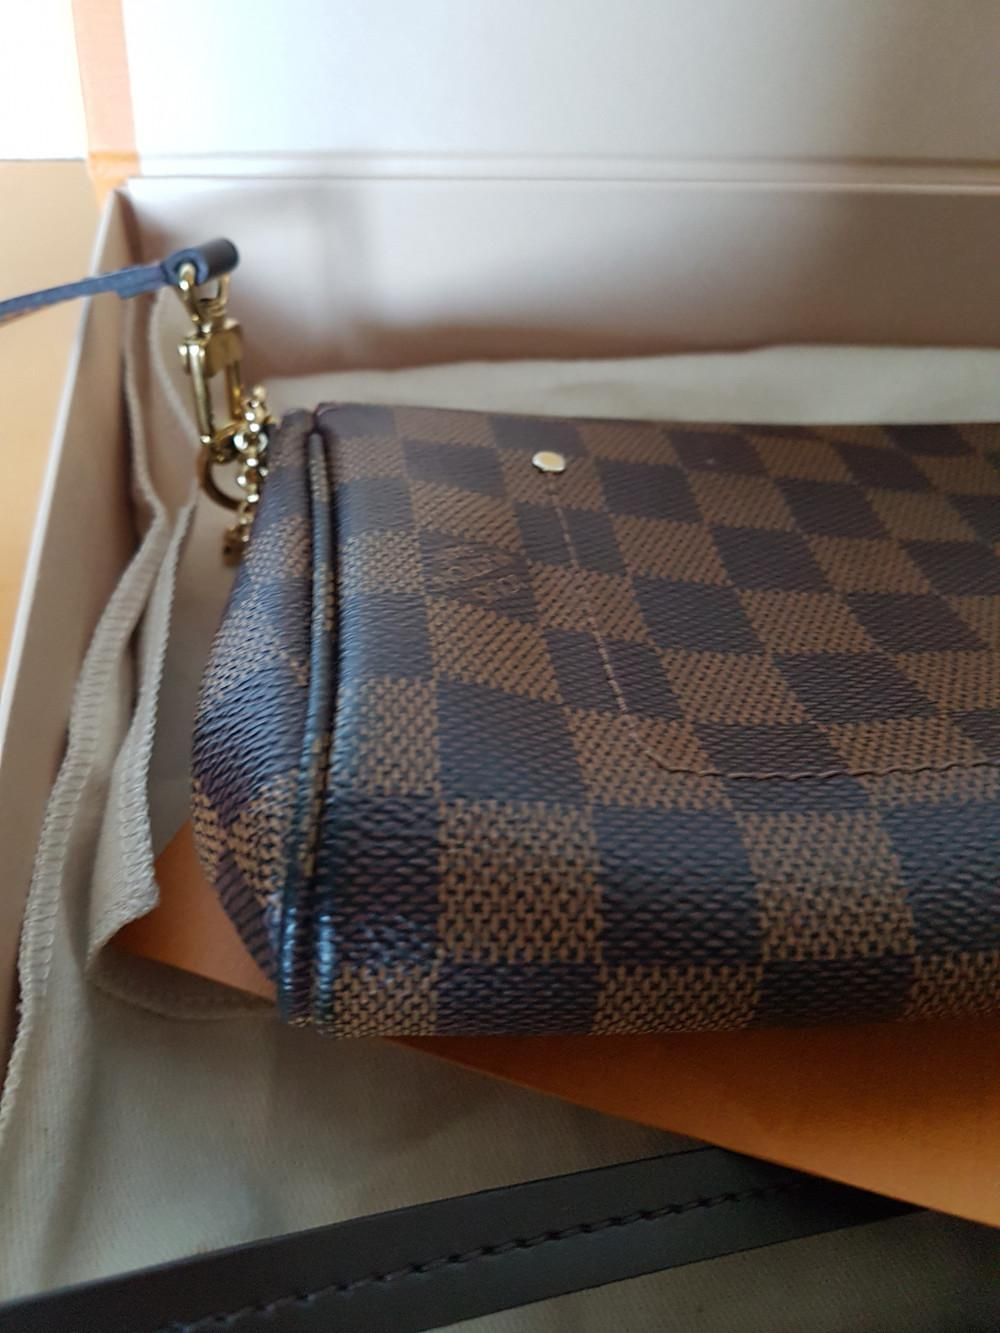 louis-vuitton-95576-6-347933